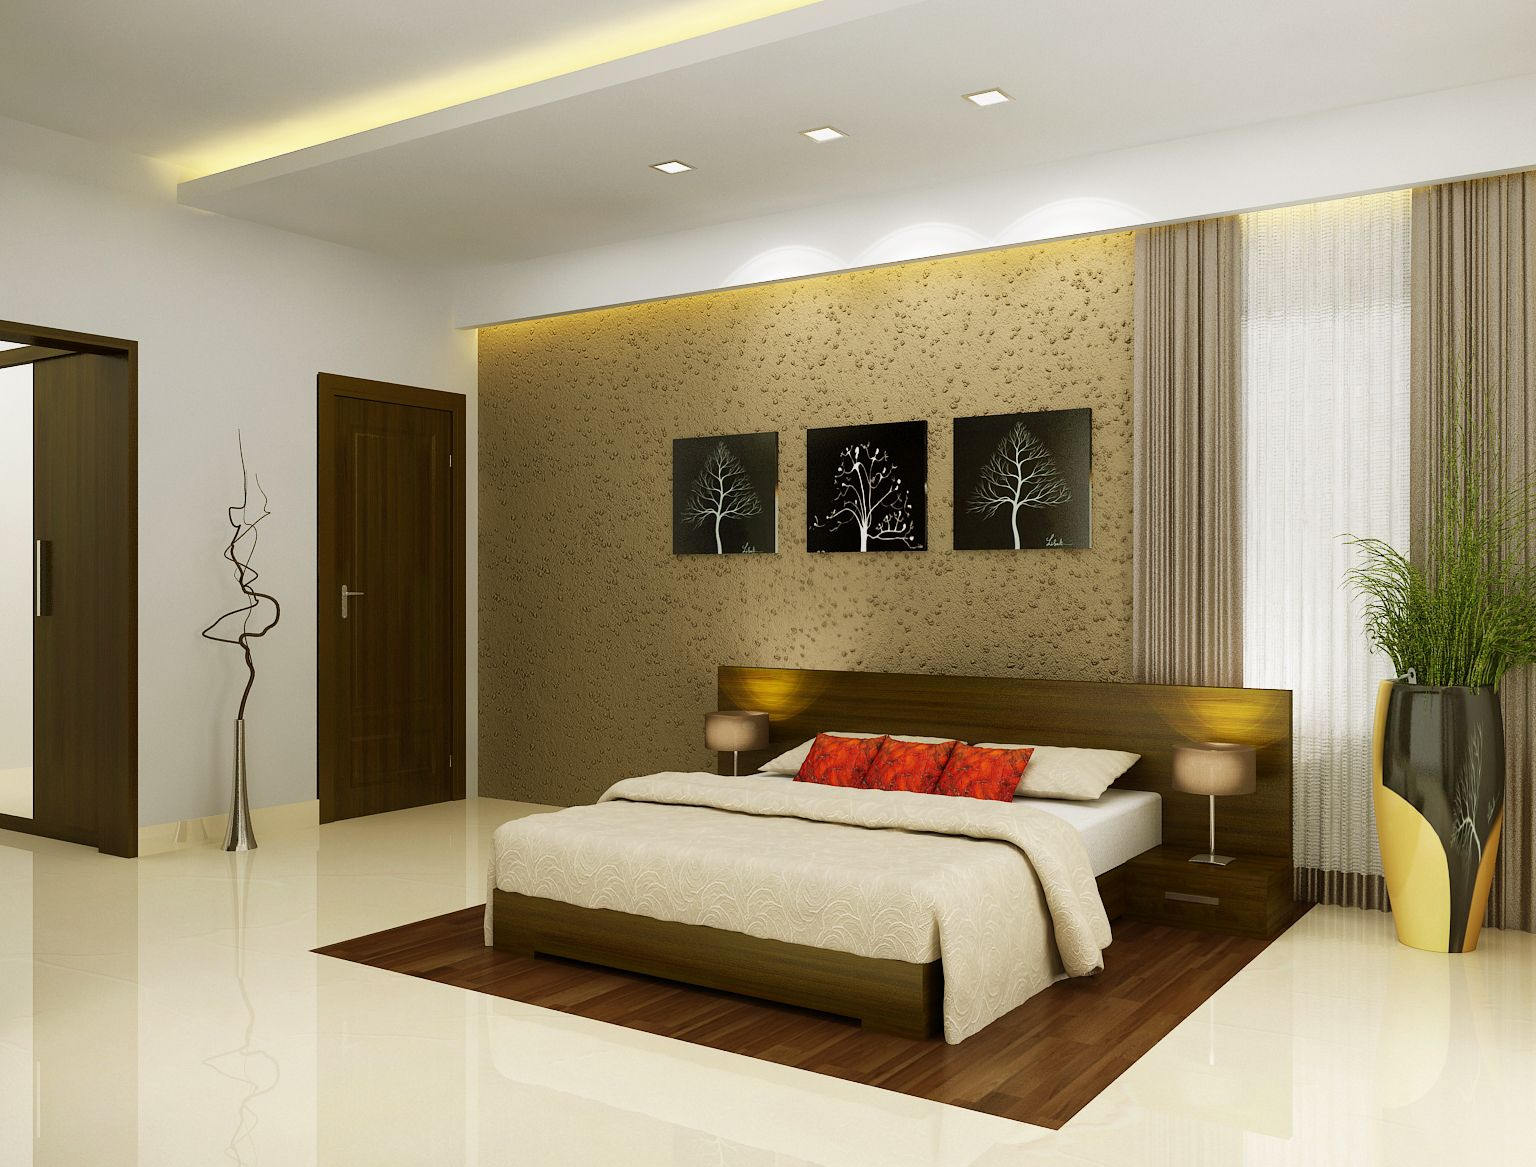 Bedroom design kerala style design ideas 2017 2018 for Interior designs in kerala